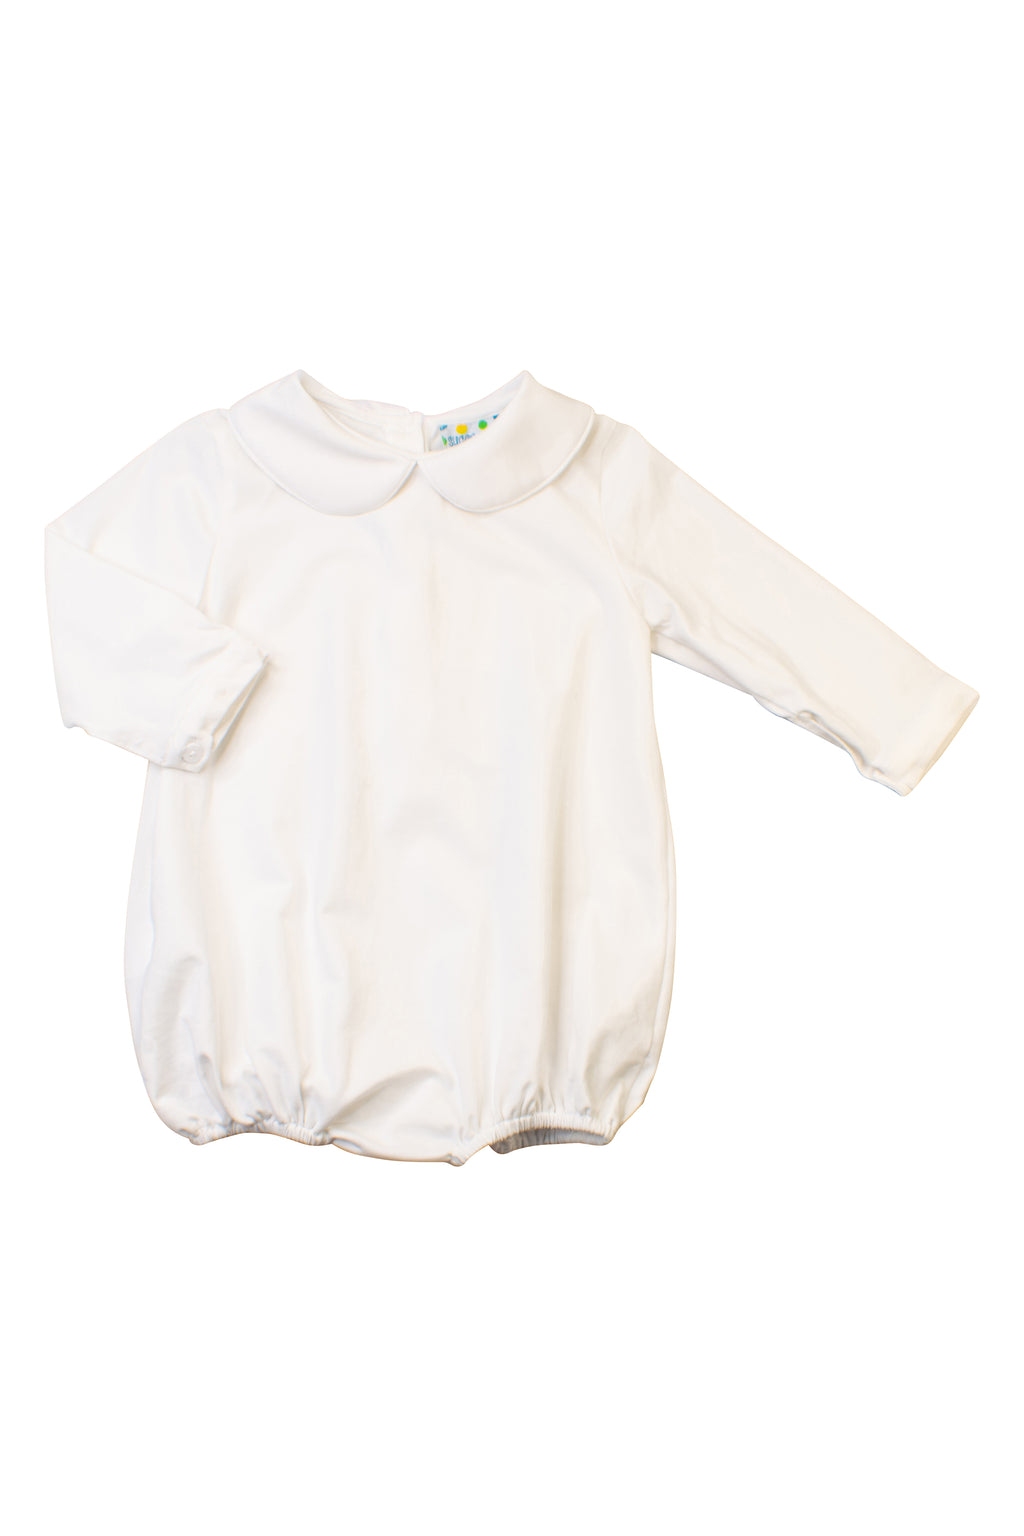 Boys White Long Sleeve Bubble (KNIT)